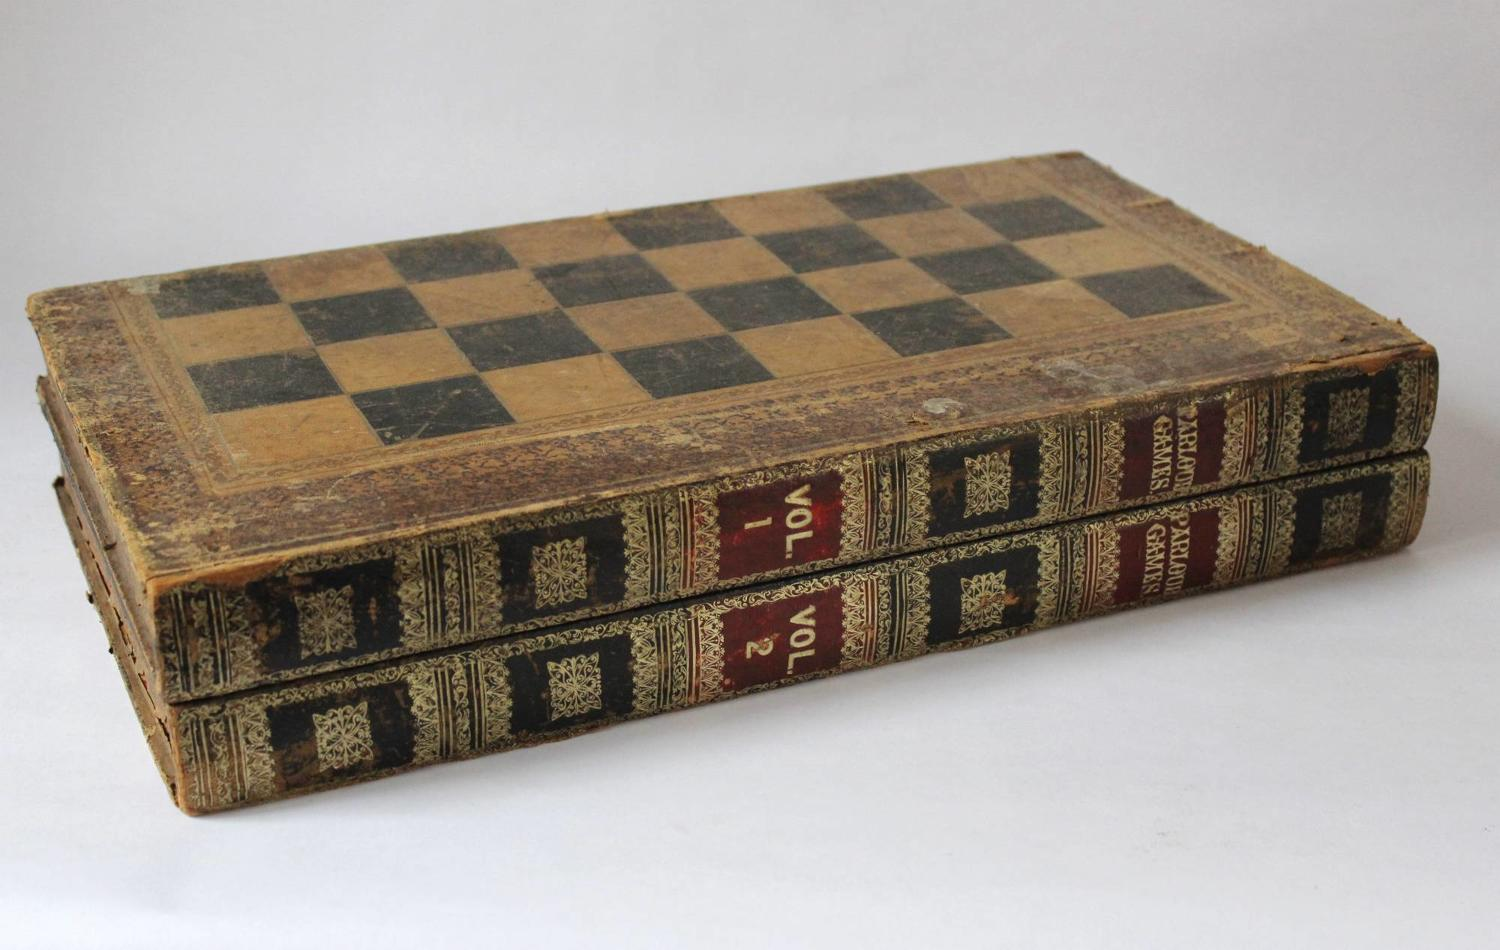 Antique Gilt-Tooled Leather-Bound Games Box of Book form